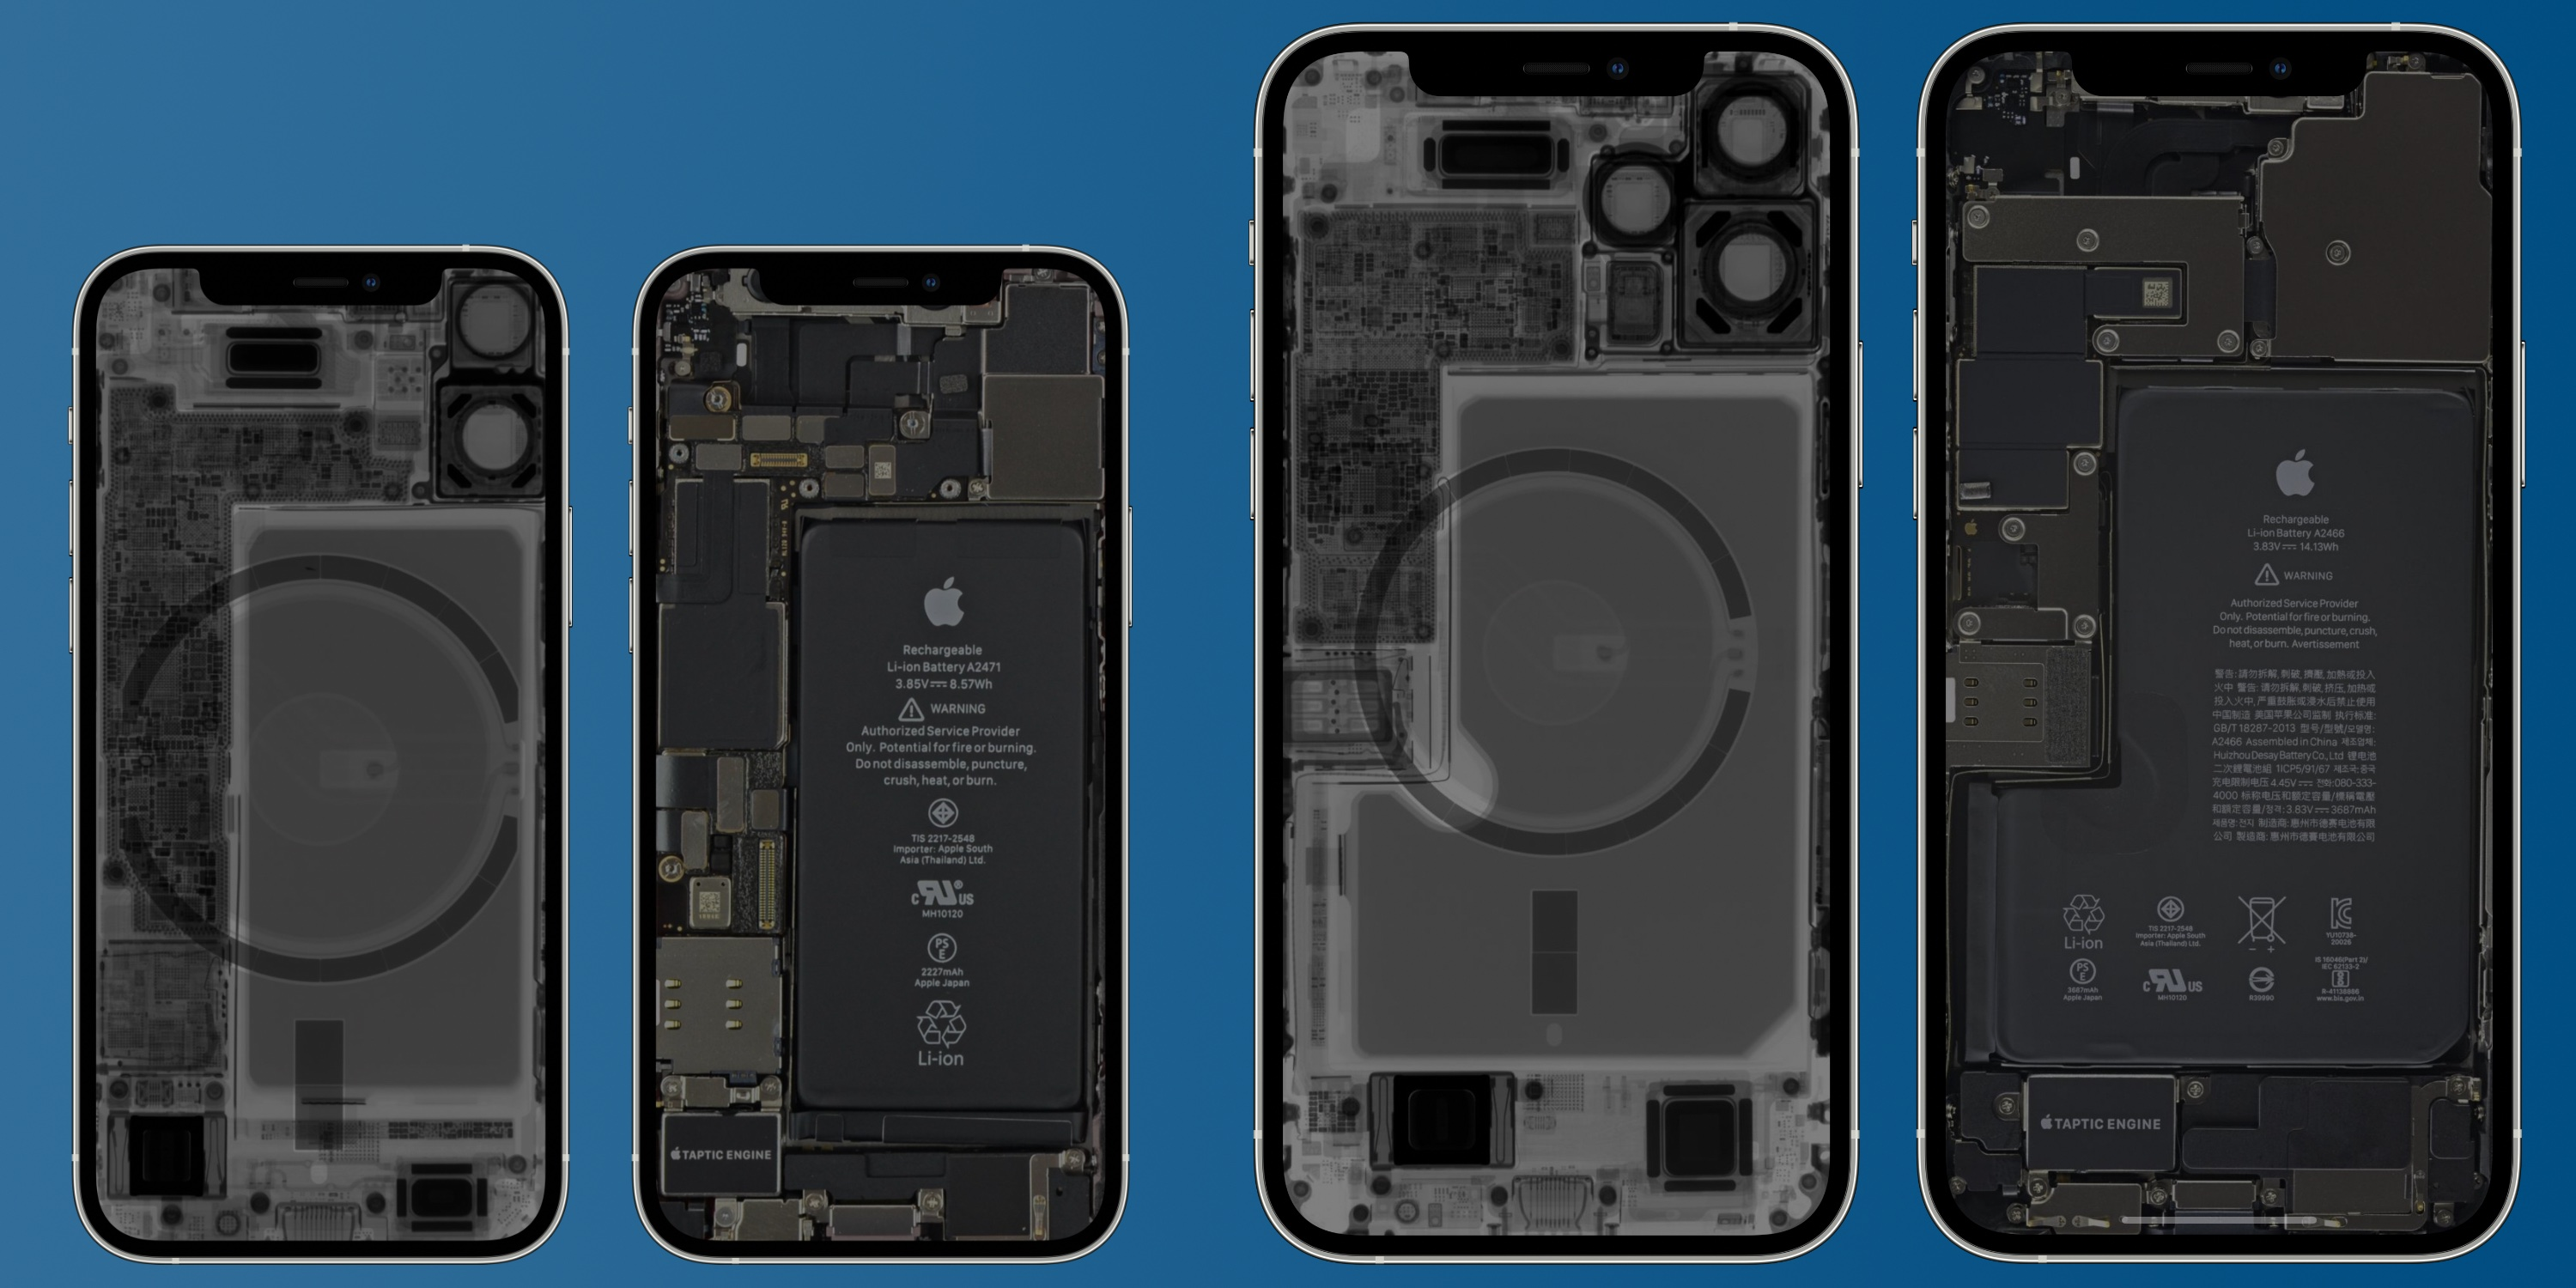 photo of Peek inside your new iPhone 12 mini and iPhone 12 Pro Max with iFixit's X-ray wallpapers image